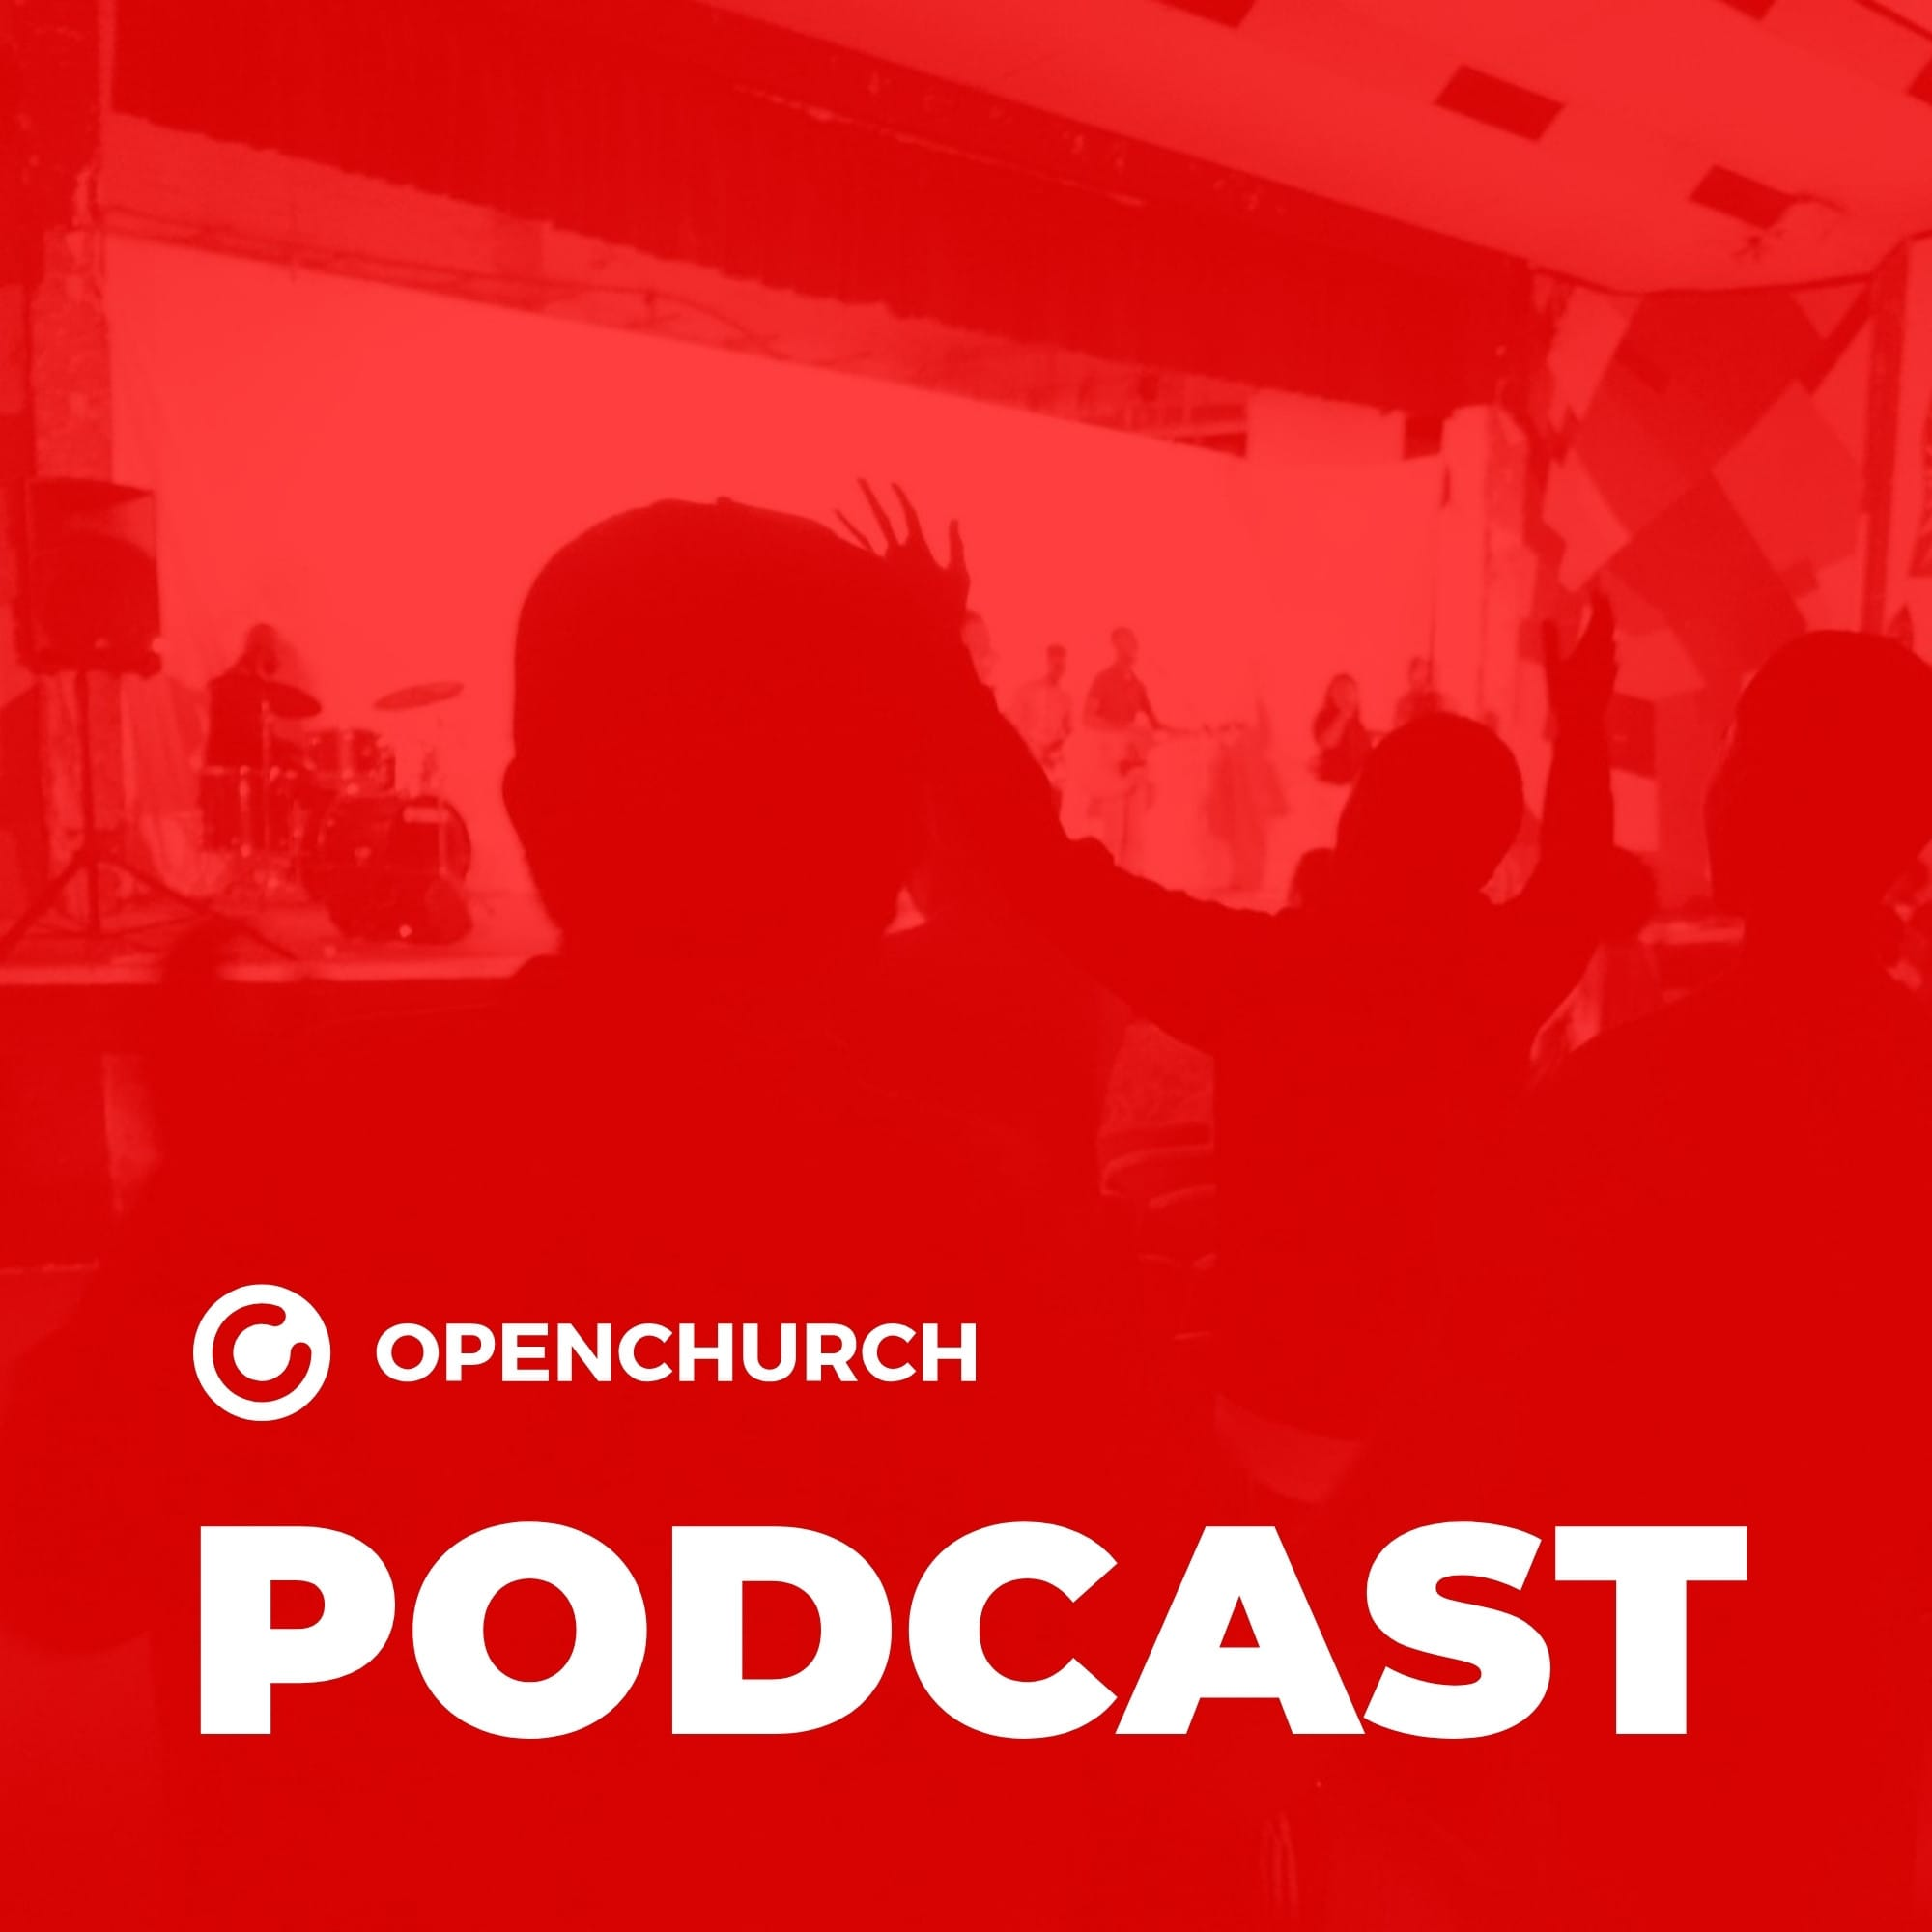 OpenChurch Podcast Cover